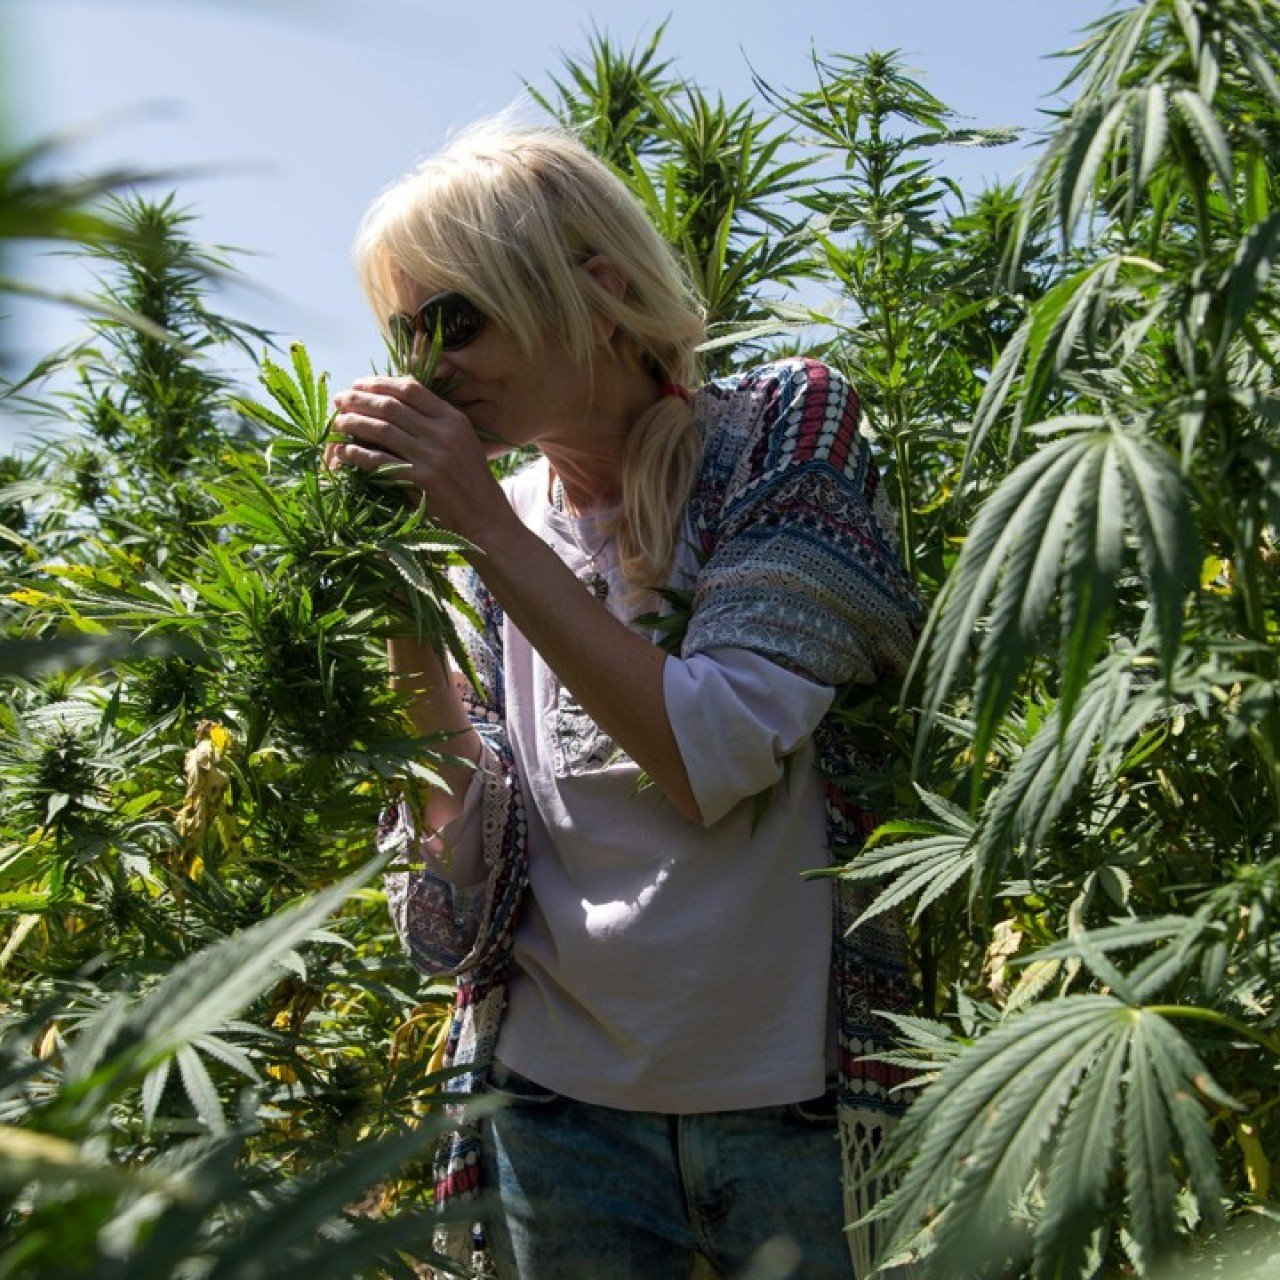 High times: Morocco's growing number of cannabis tourists